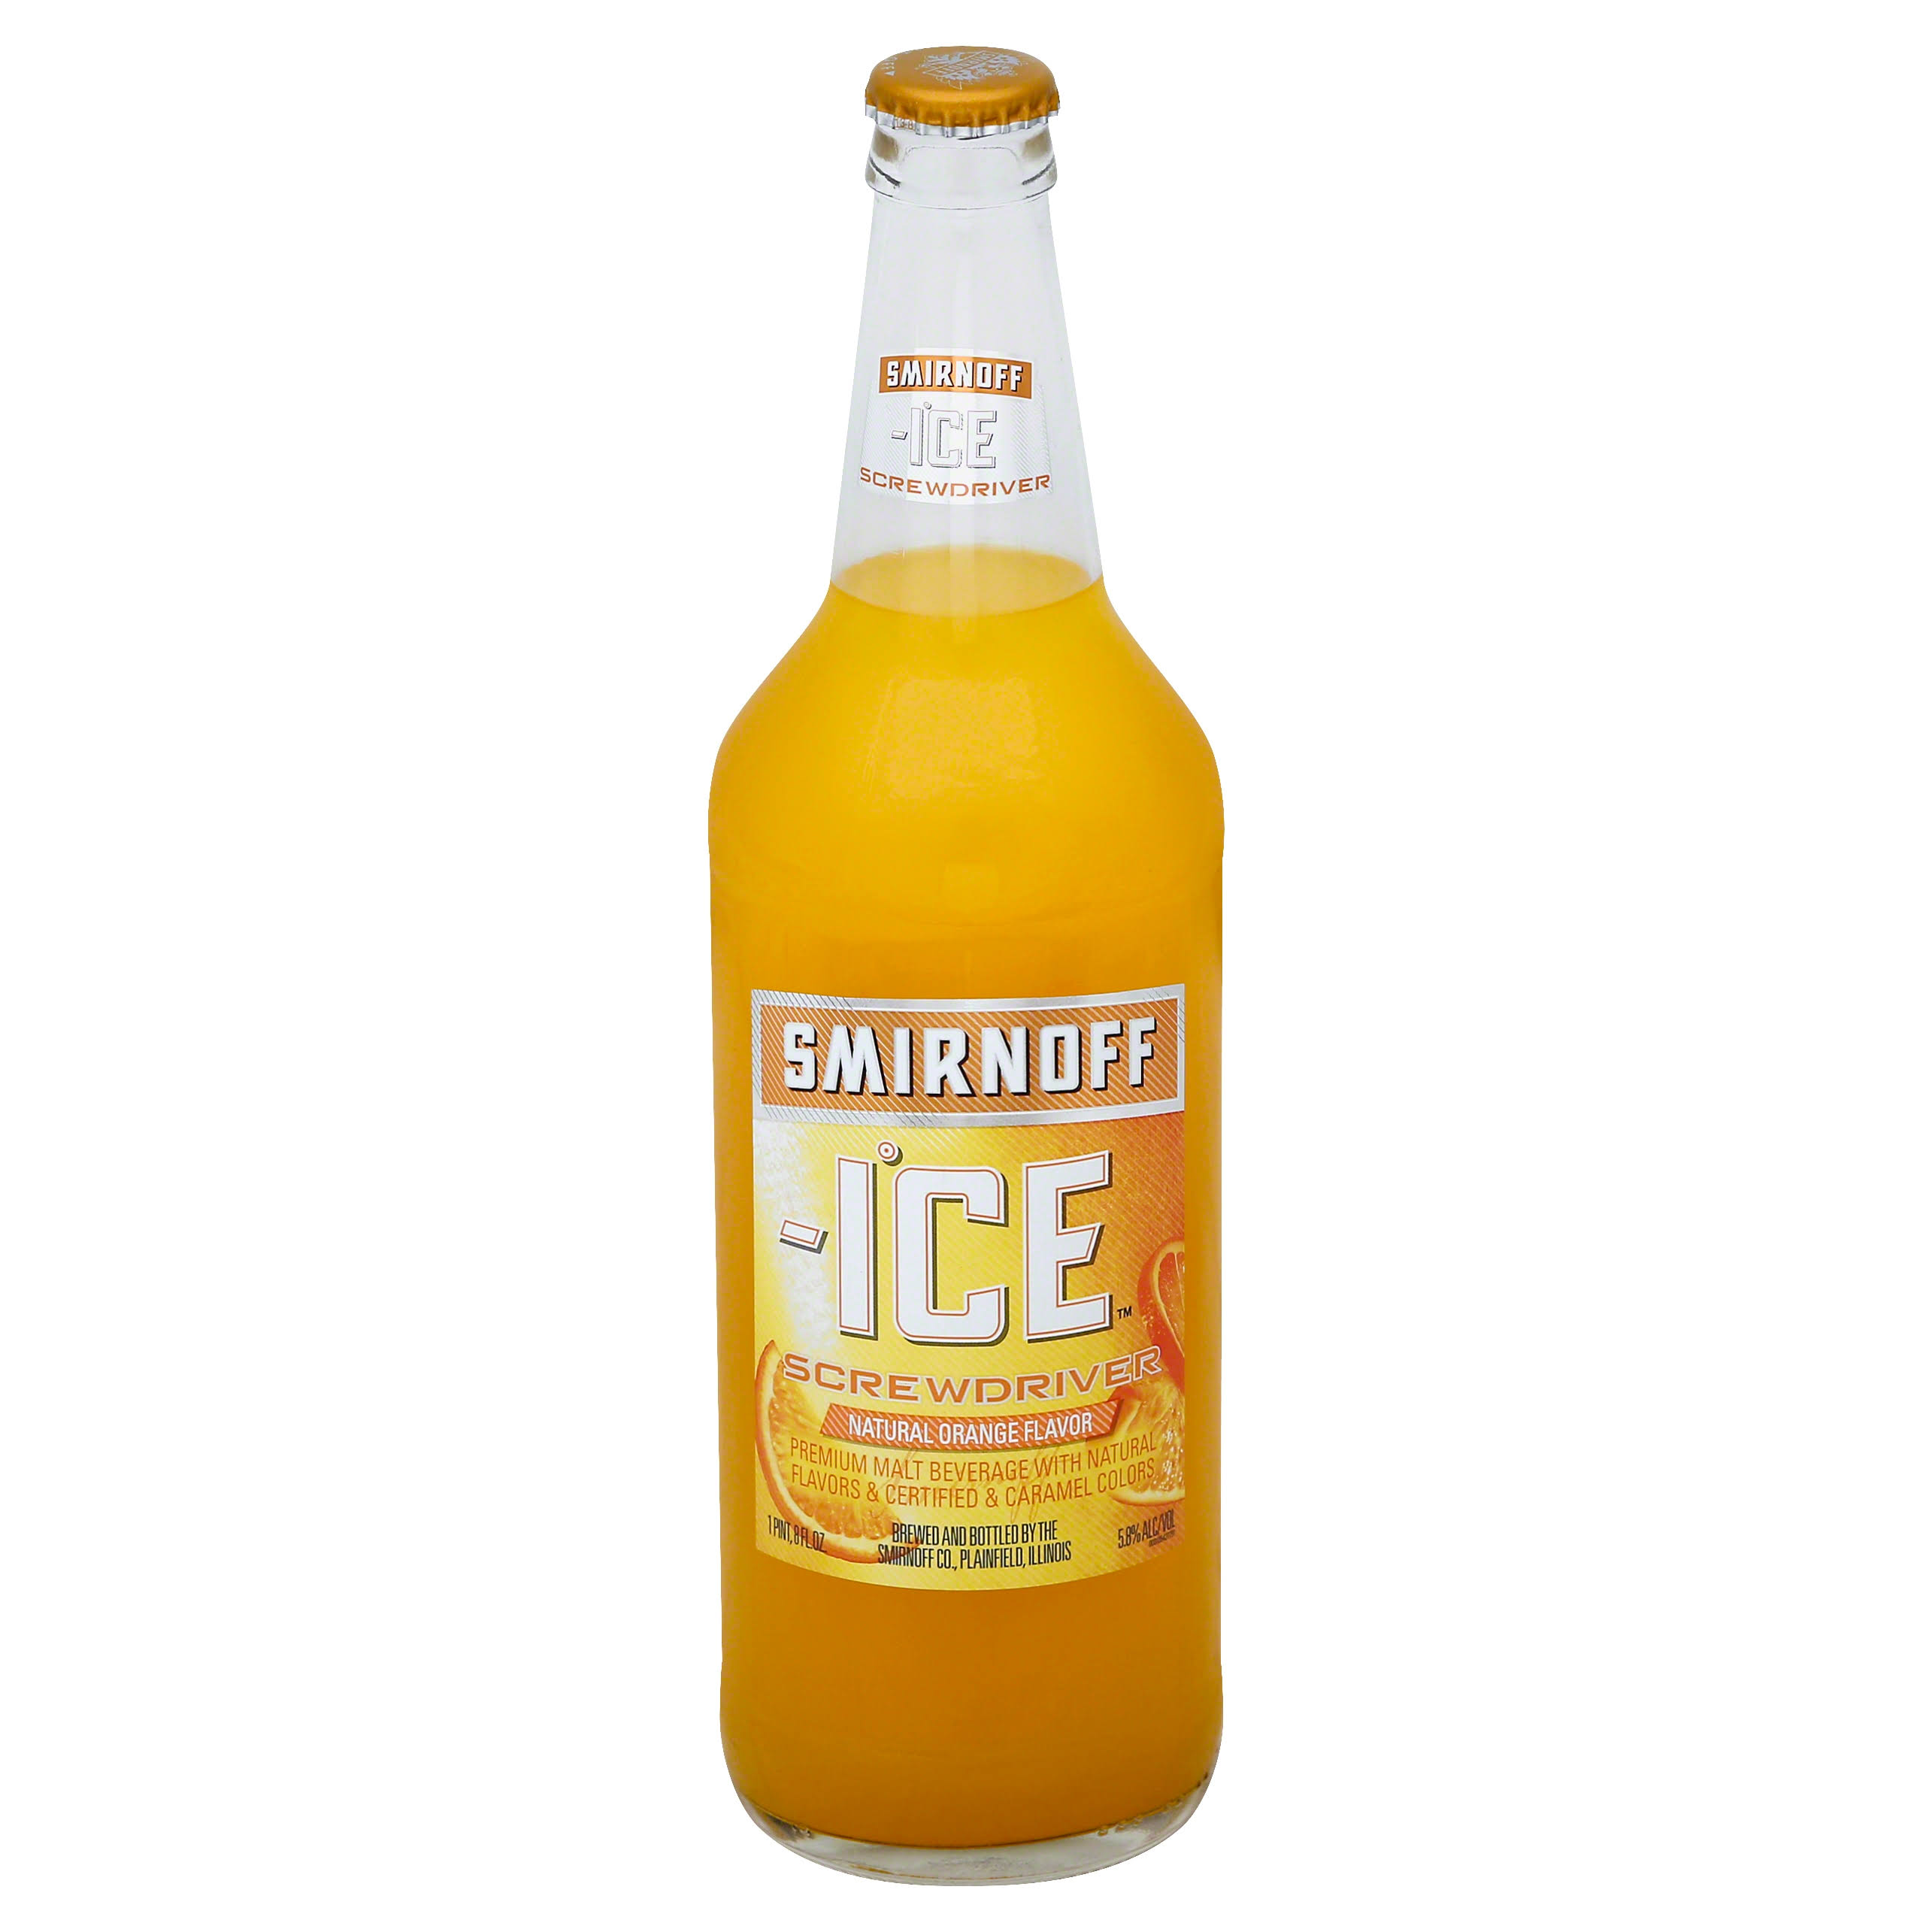 Smirnoff Ice Malt Beverage, Premium, Screwdriver - 24 oz